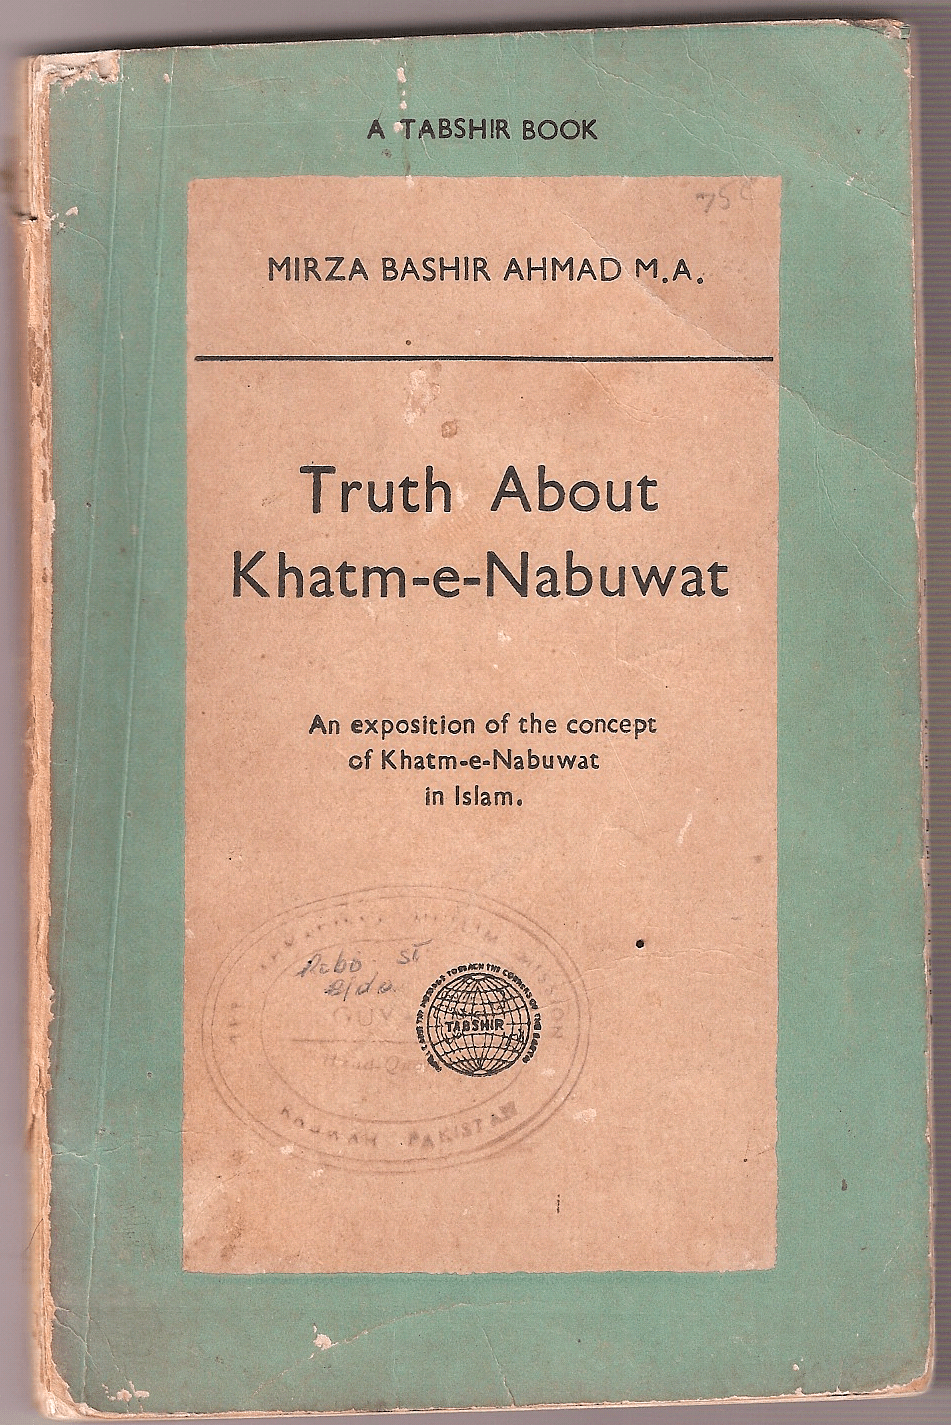 https://i0.wp.com/files.qern.org/qarchives/qadibooks/truthknenglish/bashir-kn-1.png